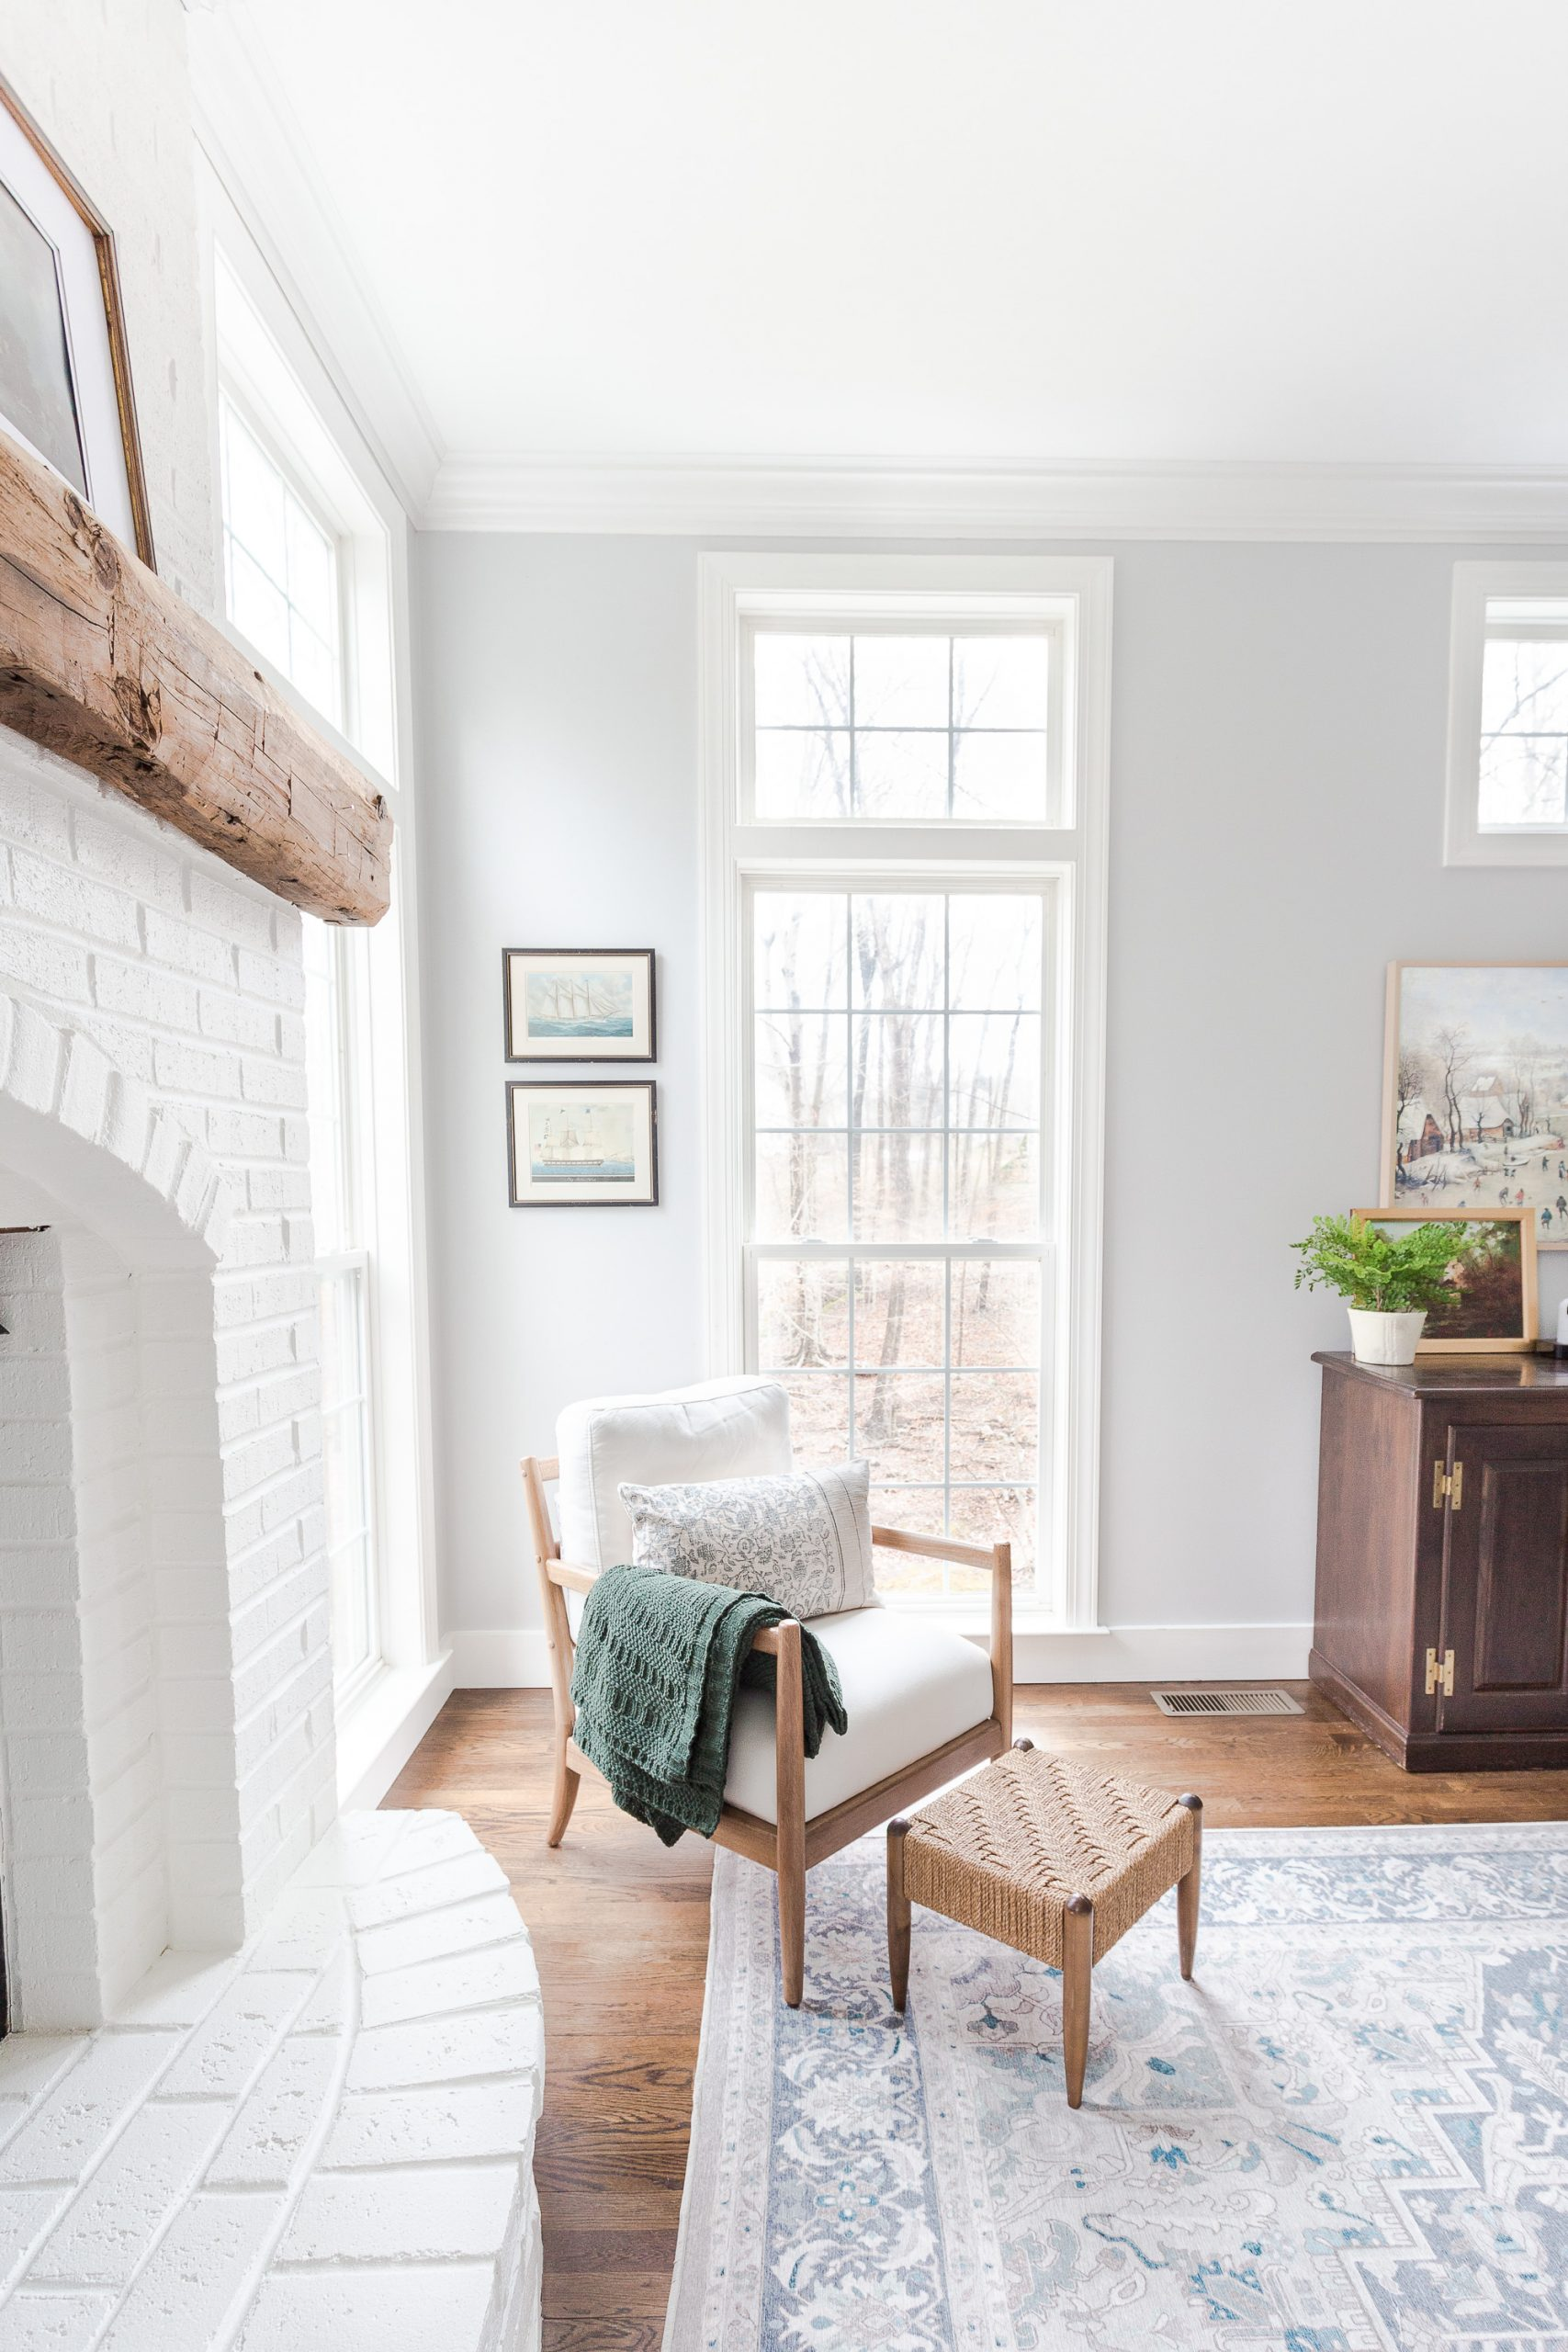 Family Room with chair in corner next to window